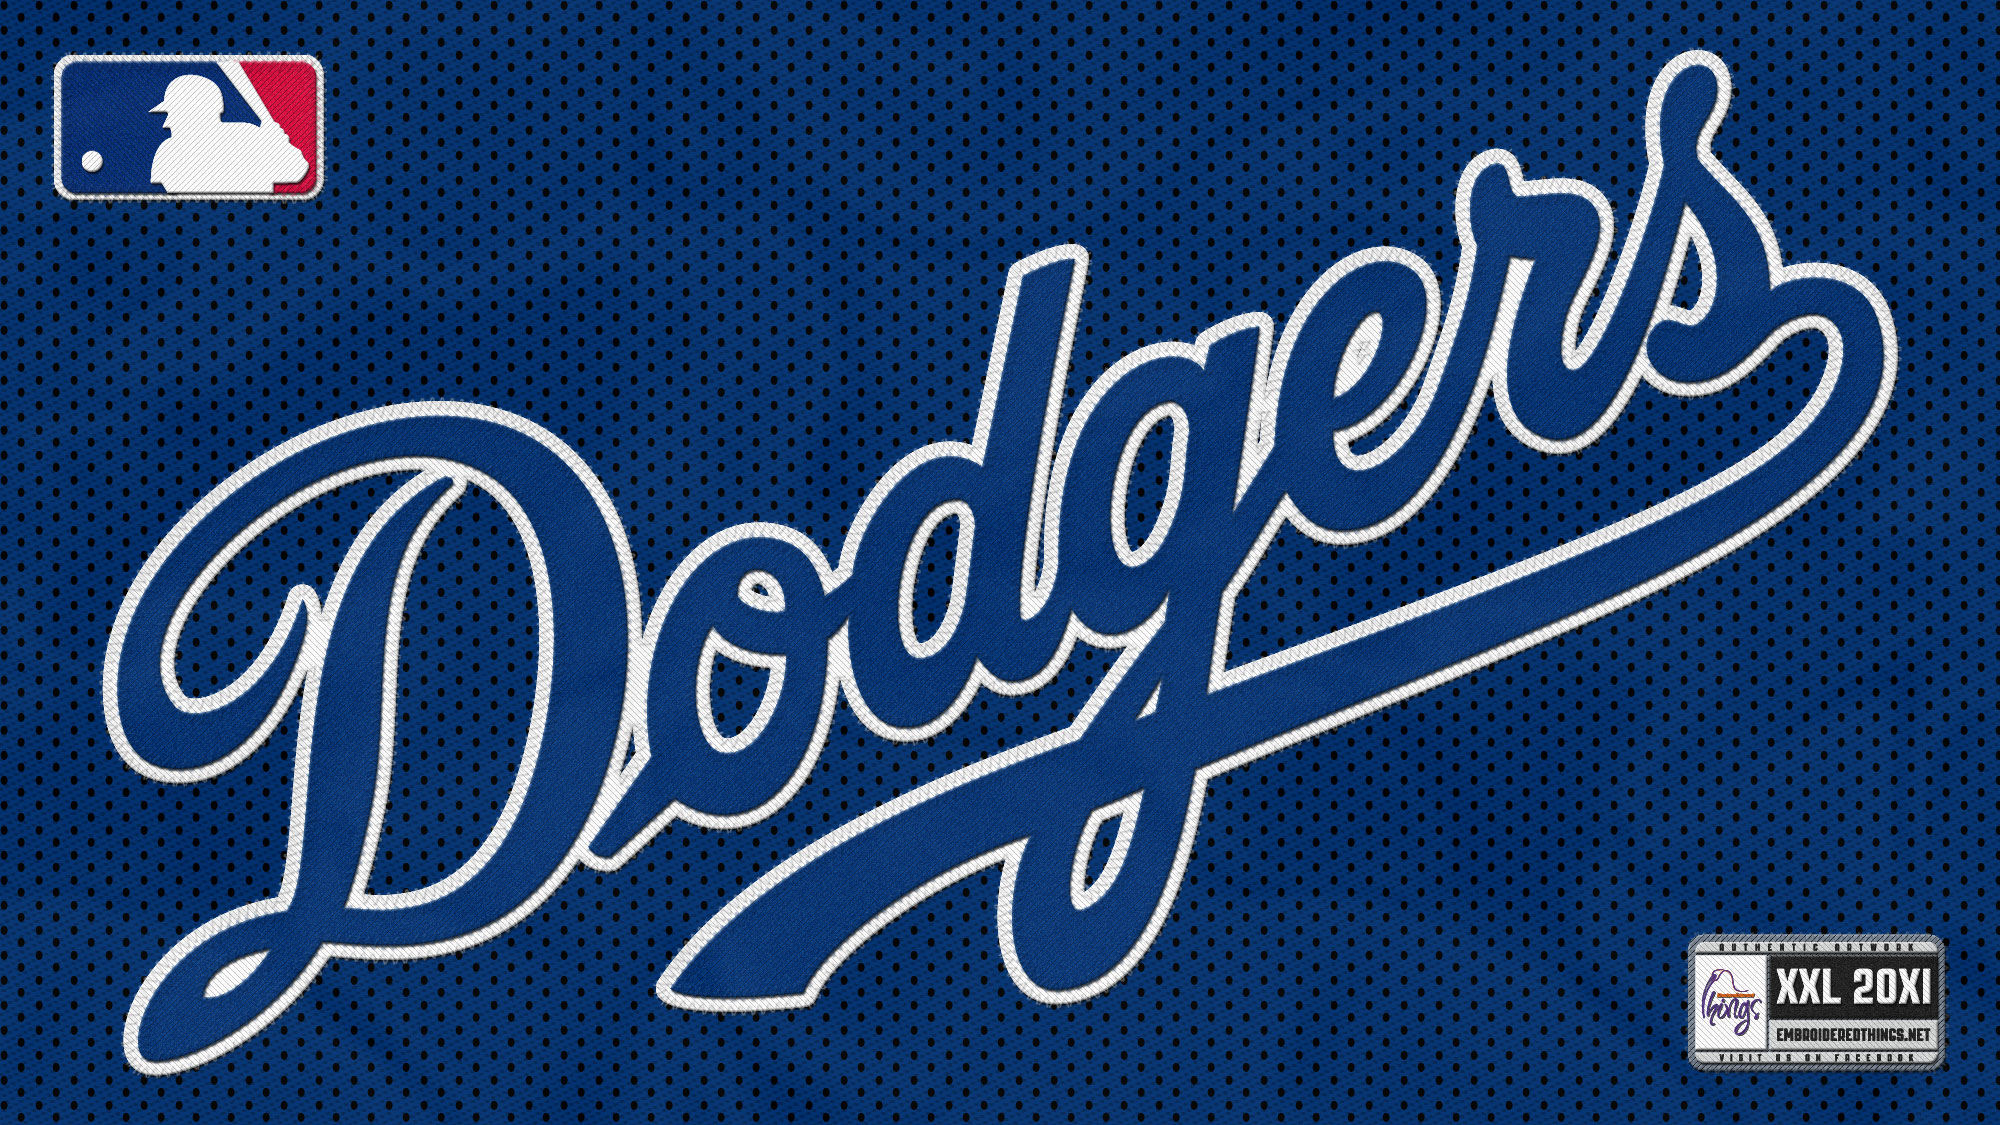 Los Angeles Dodgers wallpapers Los Angeles Dodgers background   Page 2000x1125